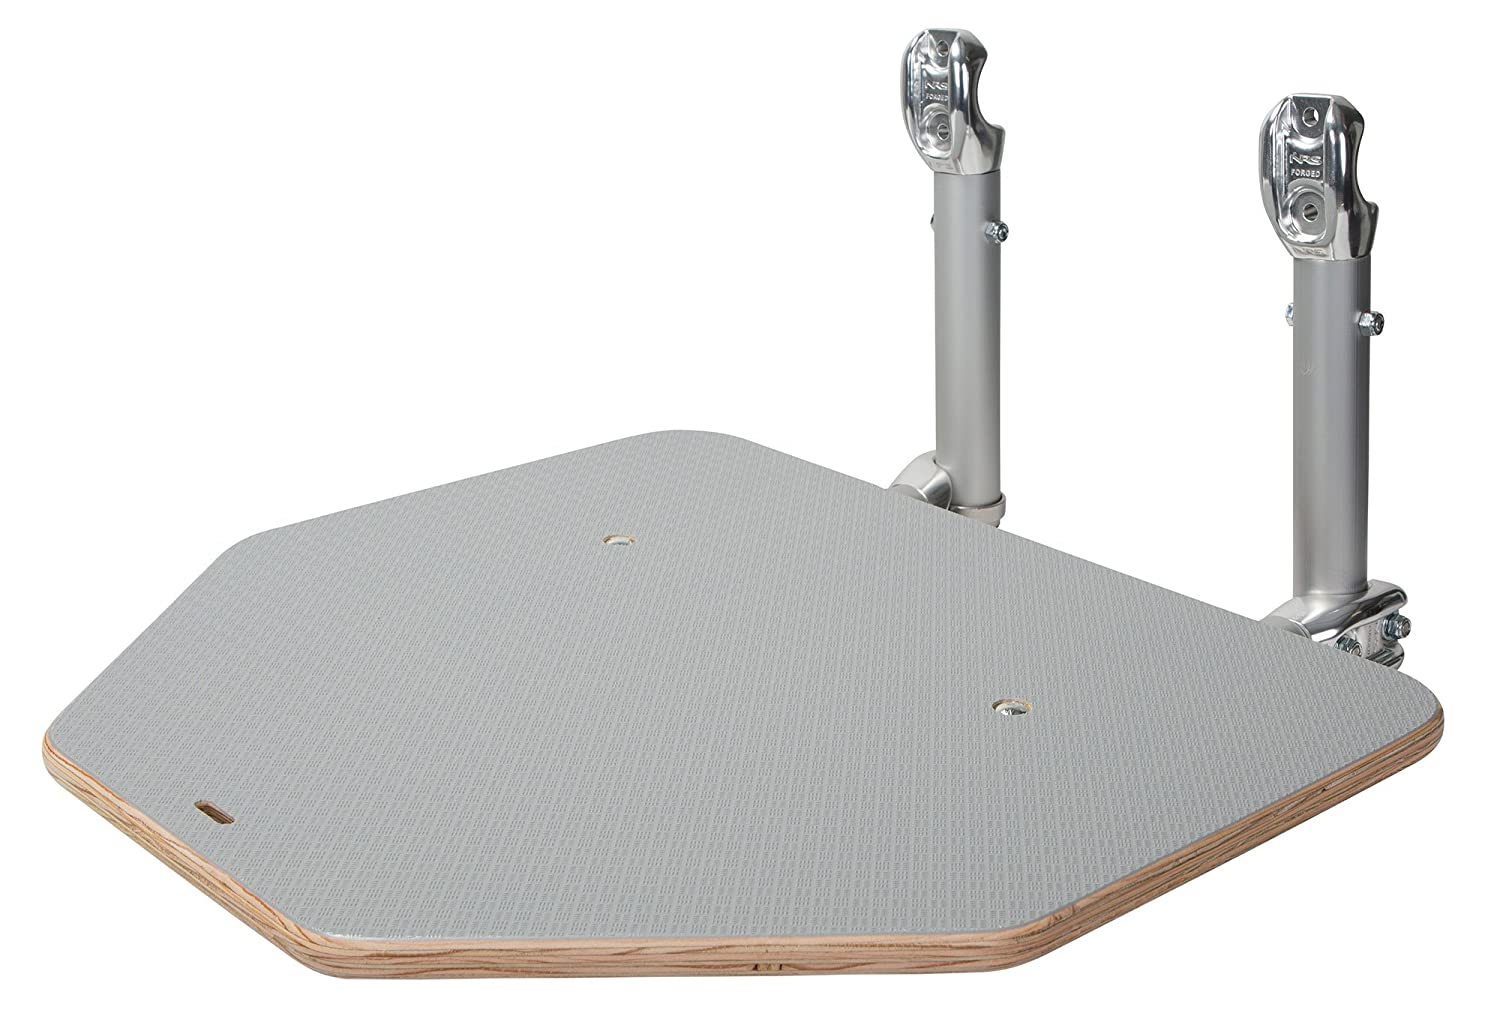 Amazon.com : Rear Casting Platform : Sports & Outdoors